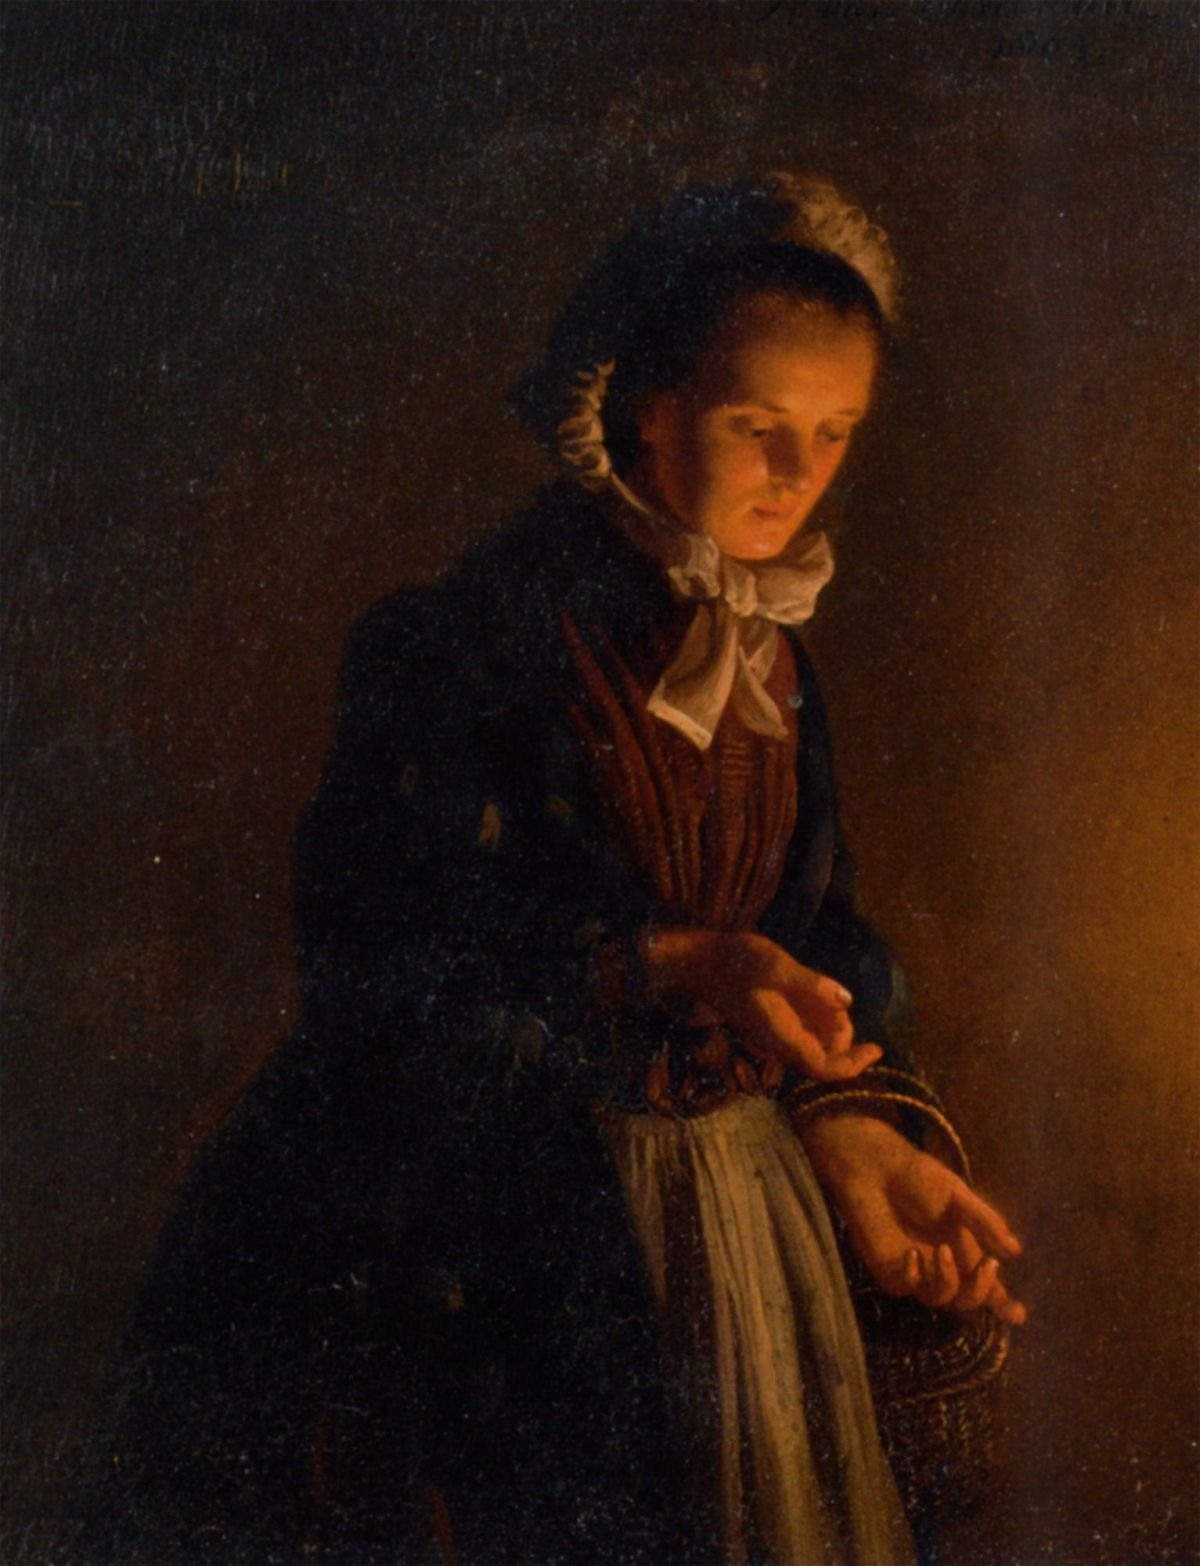 A Servant Girl by Candle Light by Petrus Van Schendel